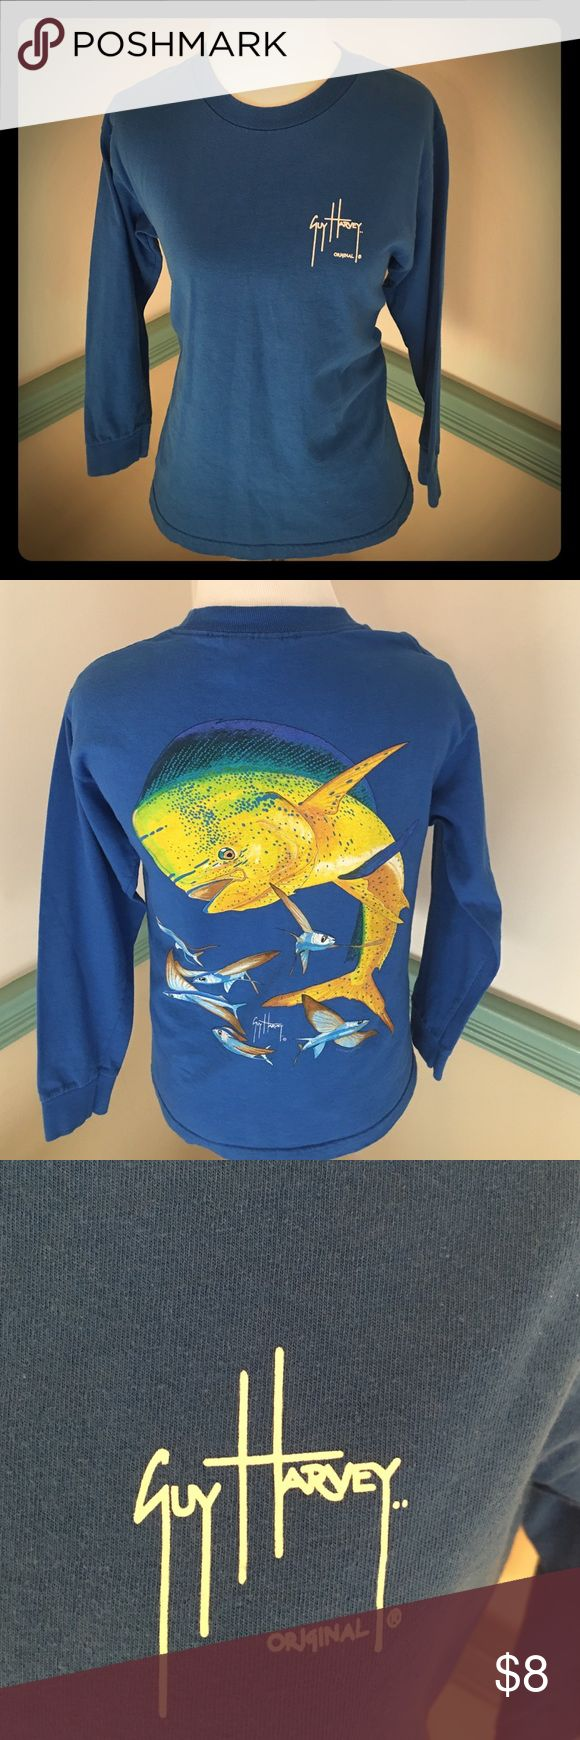 GUY HARVEY LONG SLEEVE SHIRT. YOUTH MEDIUM. Blue with fish on back. Lightly used no holes or stains perfect for boy or girl. YOUTH SIZE MEDIUM. GUY HARVEY Shirts & Tops Tees - Long Sleeve